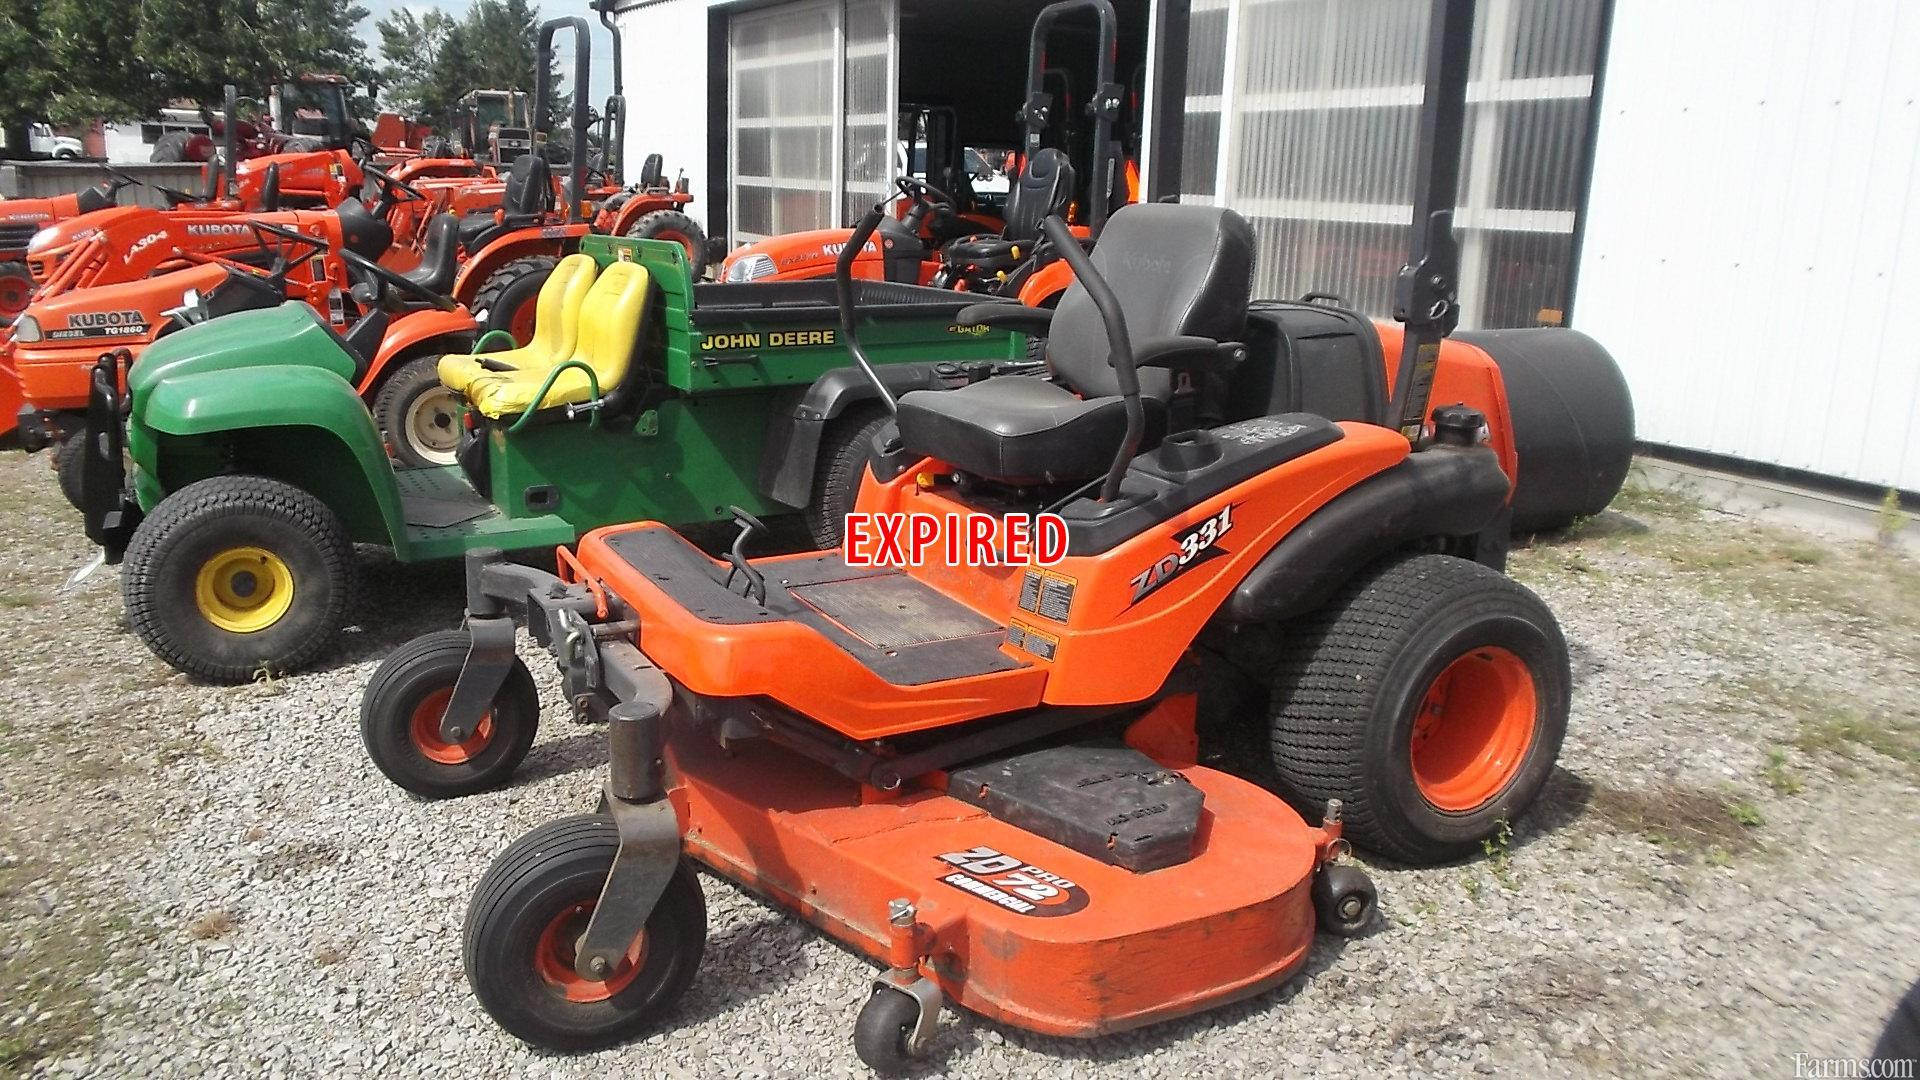 Kubota Zd331 Lawn Mower For Sale